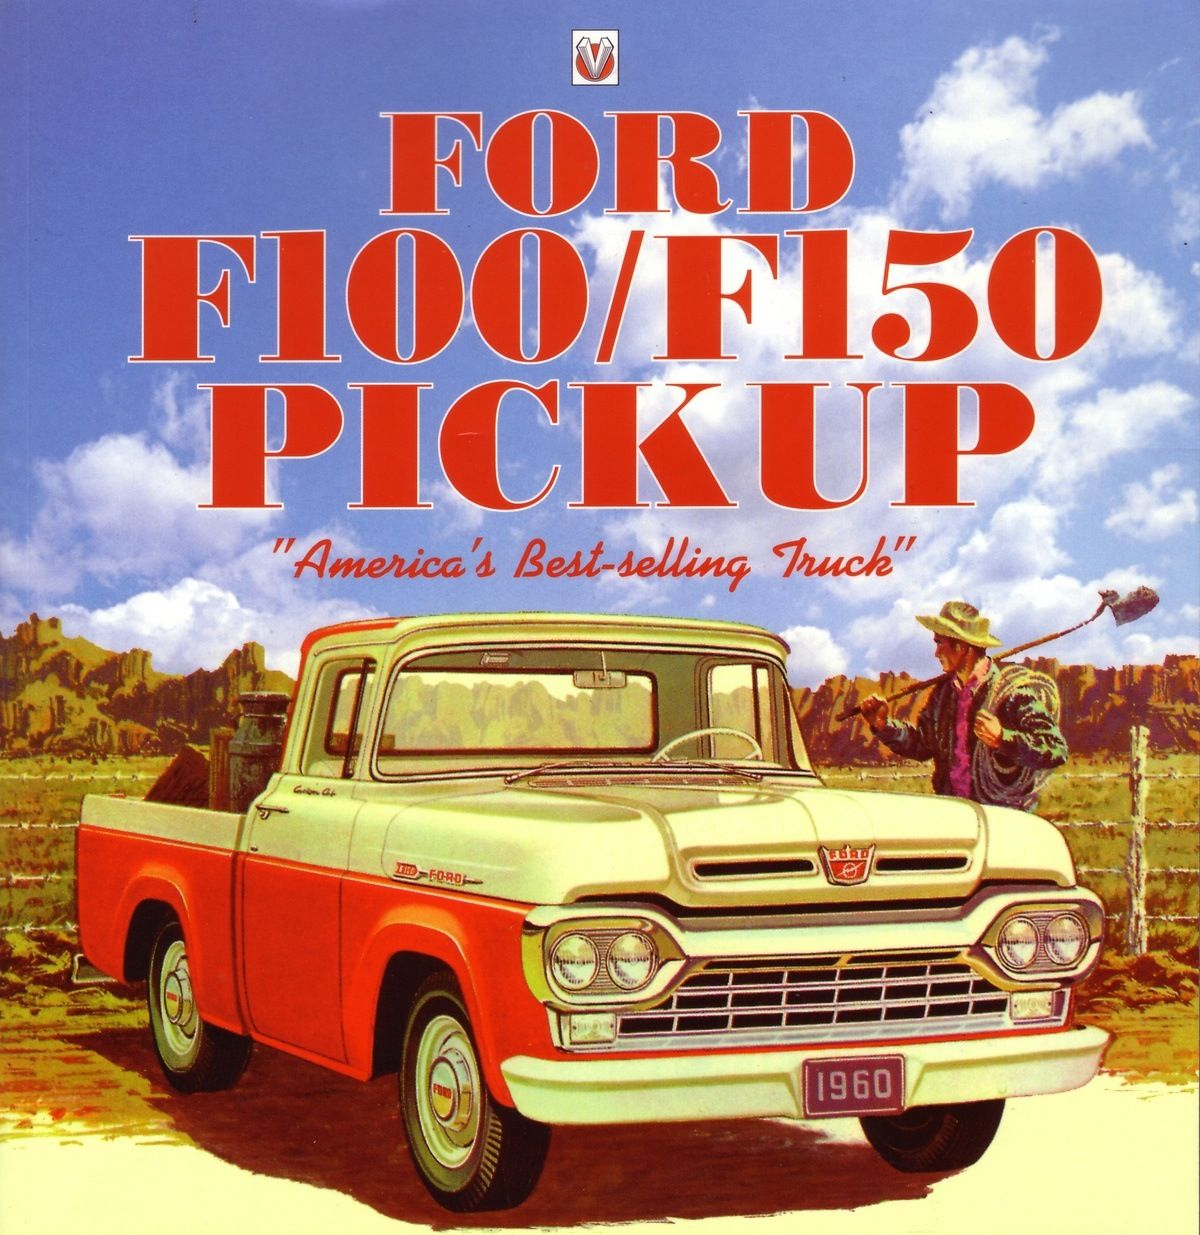 Ford Truck 1960 Ad Vintage Pickup Trucks Ford Truck Ford